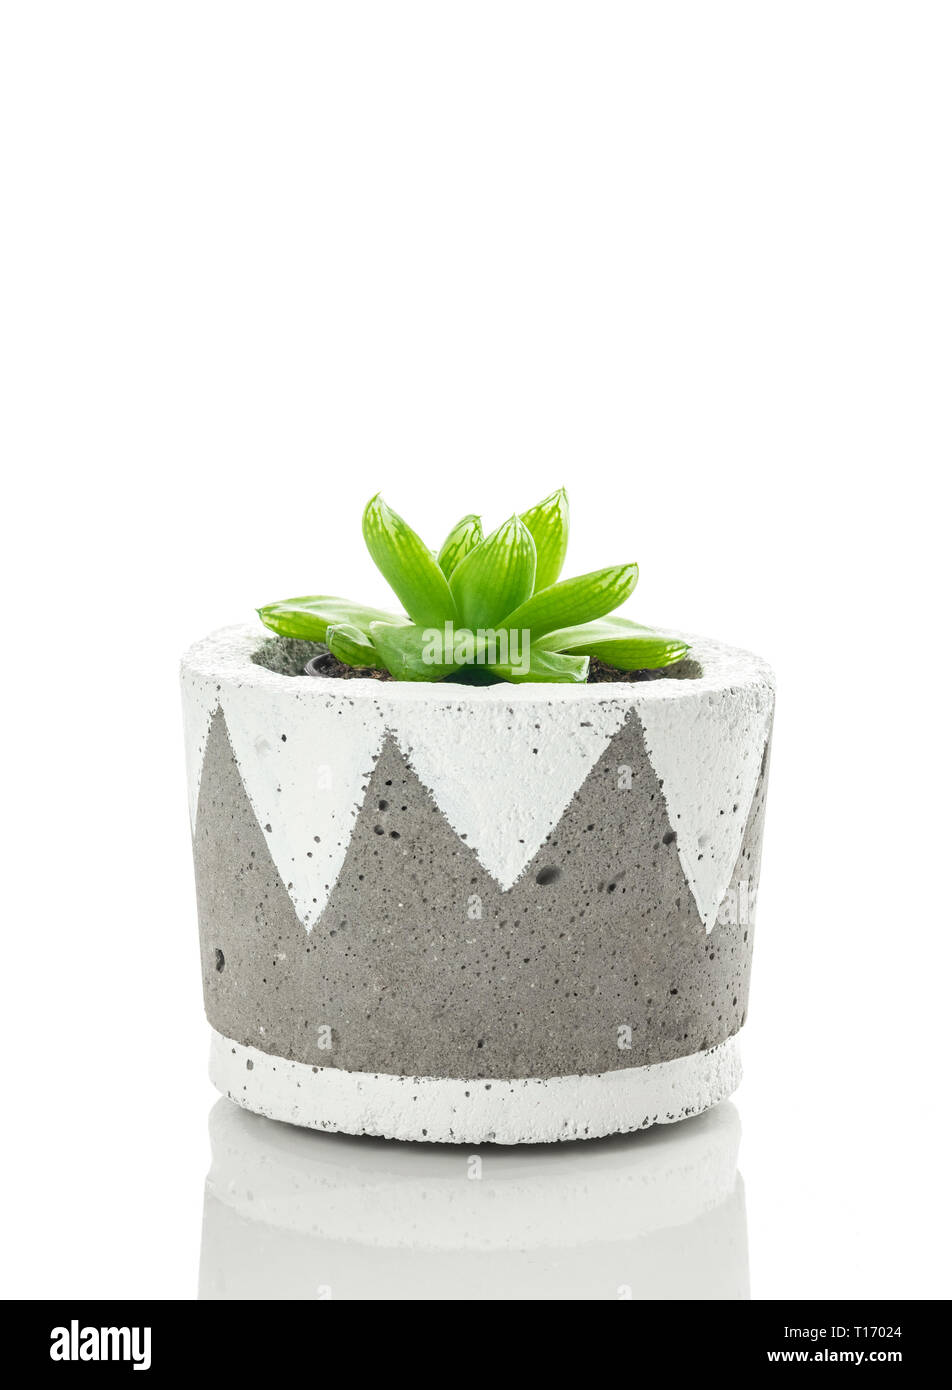 Hand Painted Plant Pot High Resolution Stock Photography And Images Alamy